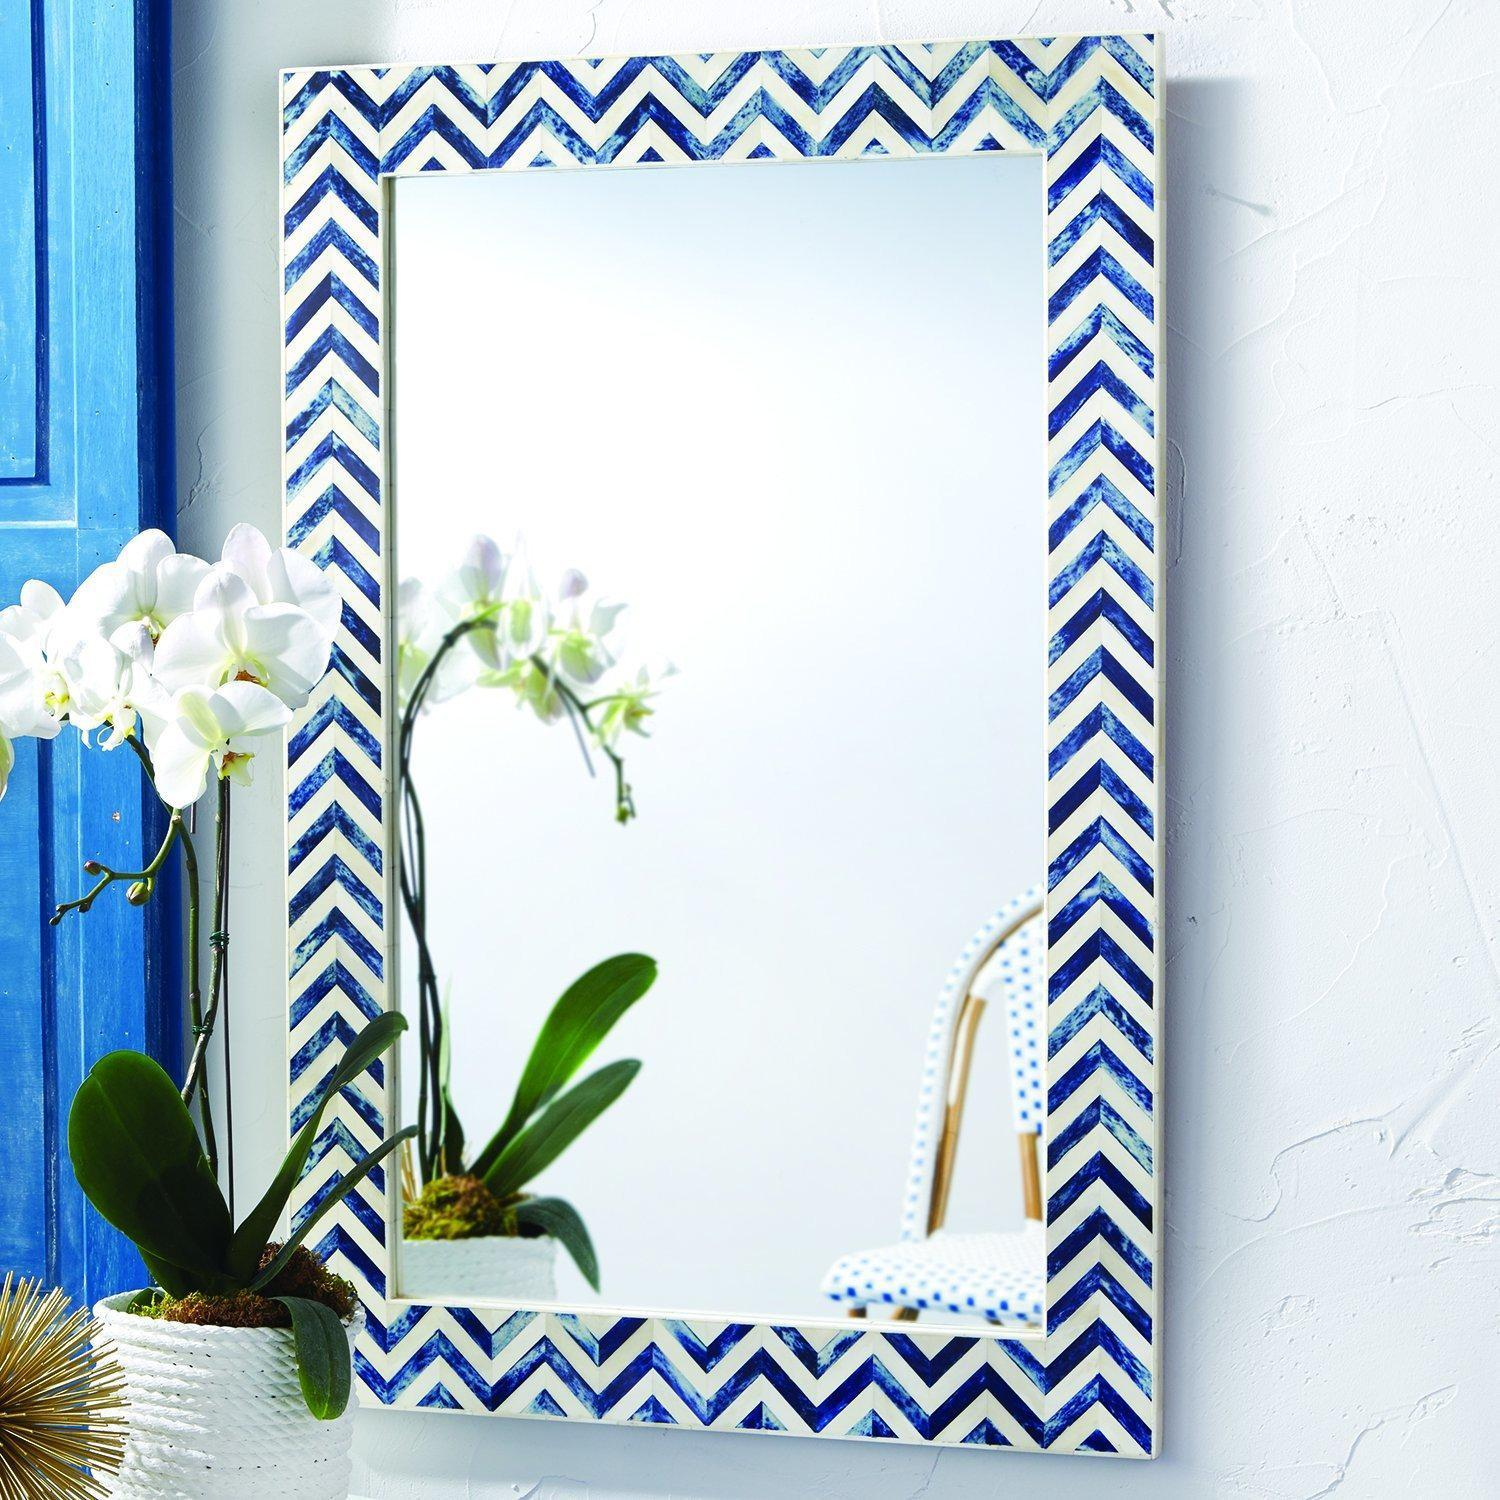 Indigo Chevron Wall Mirror-Sea Biscuit Del Mar